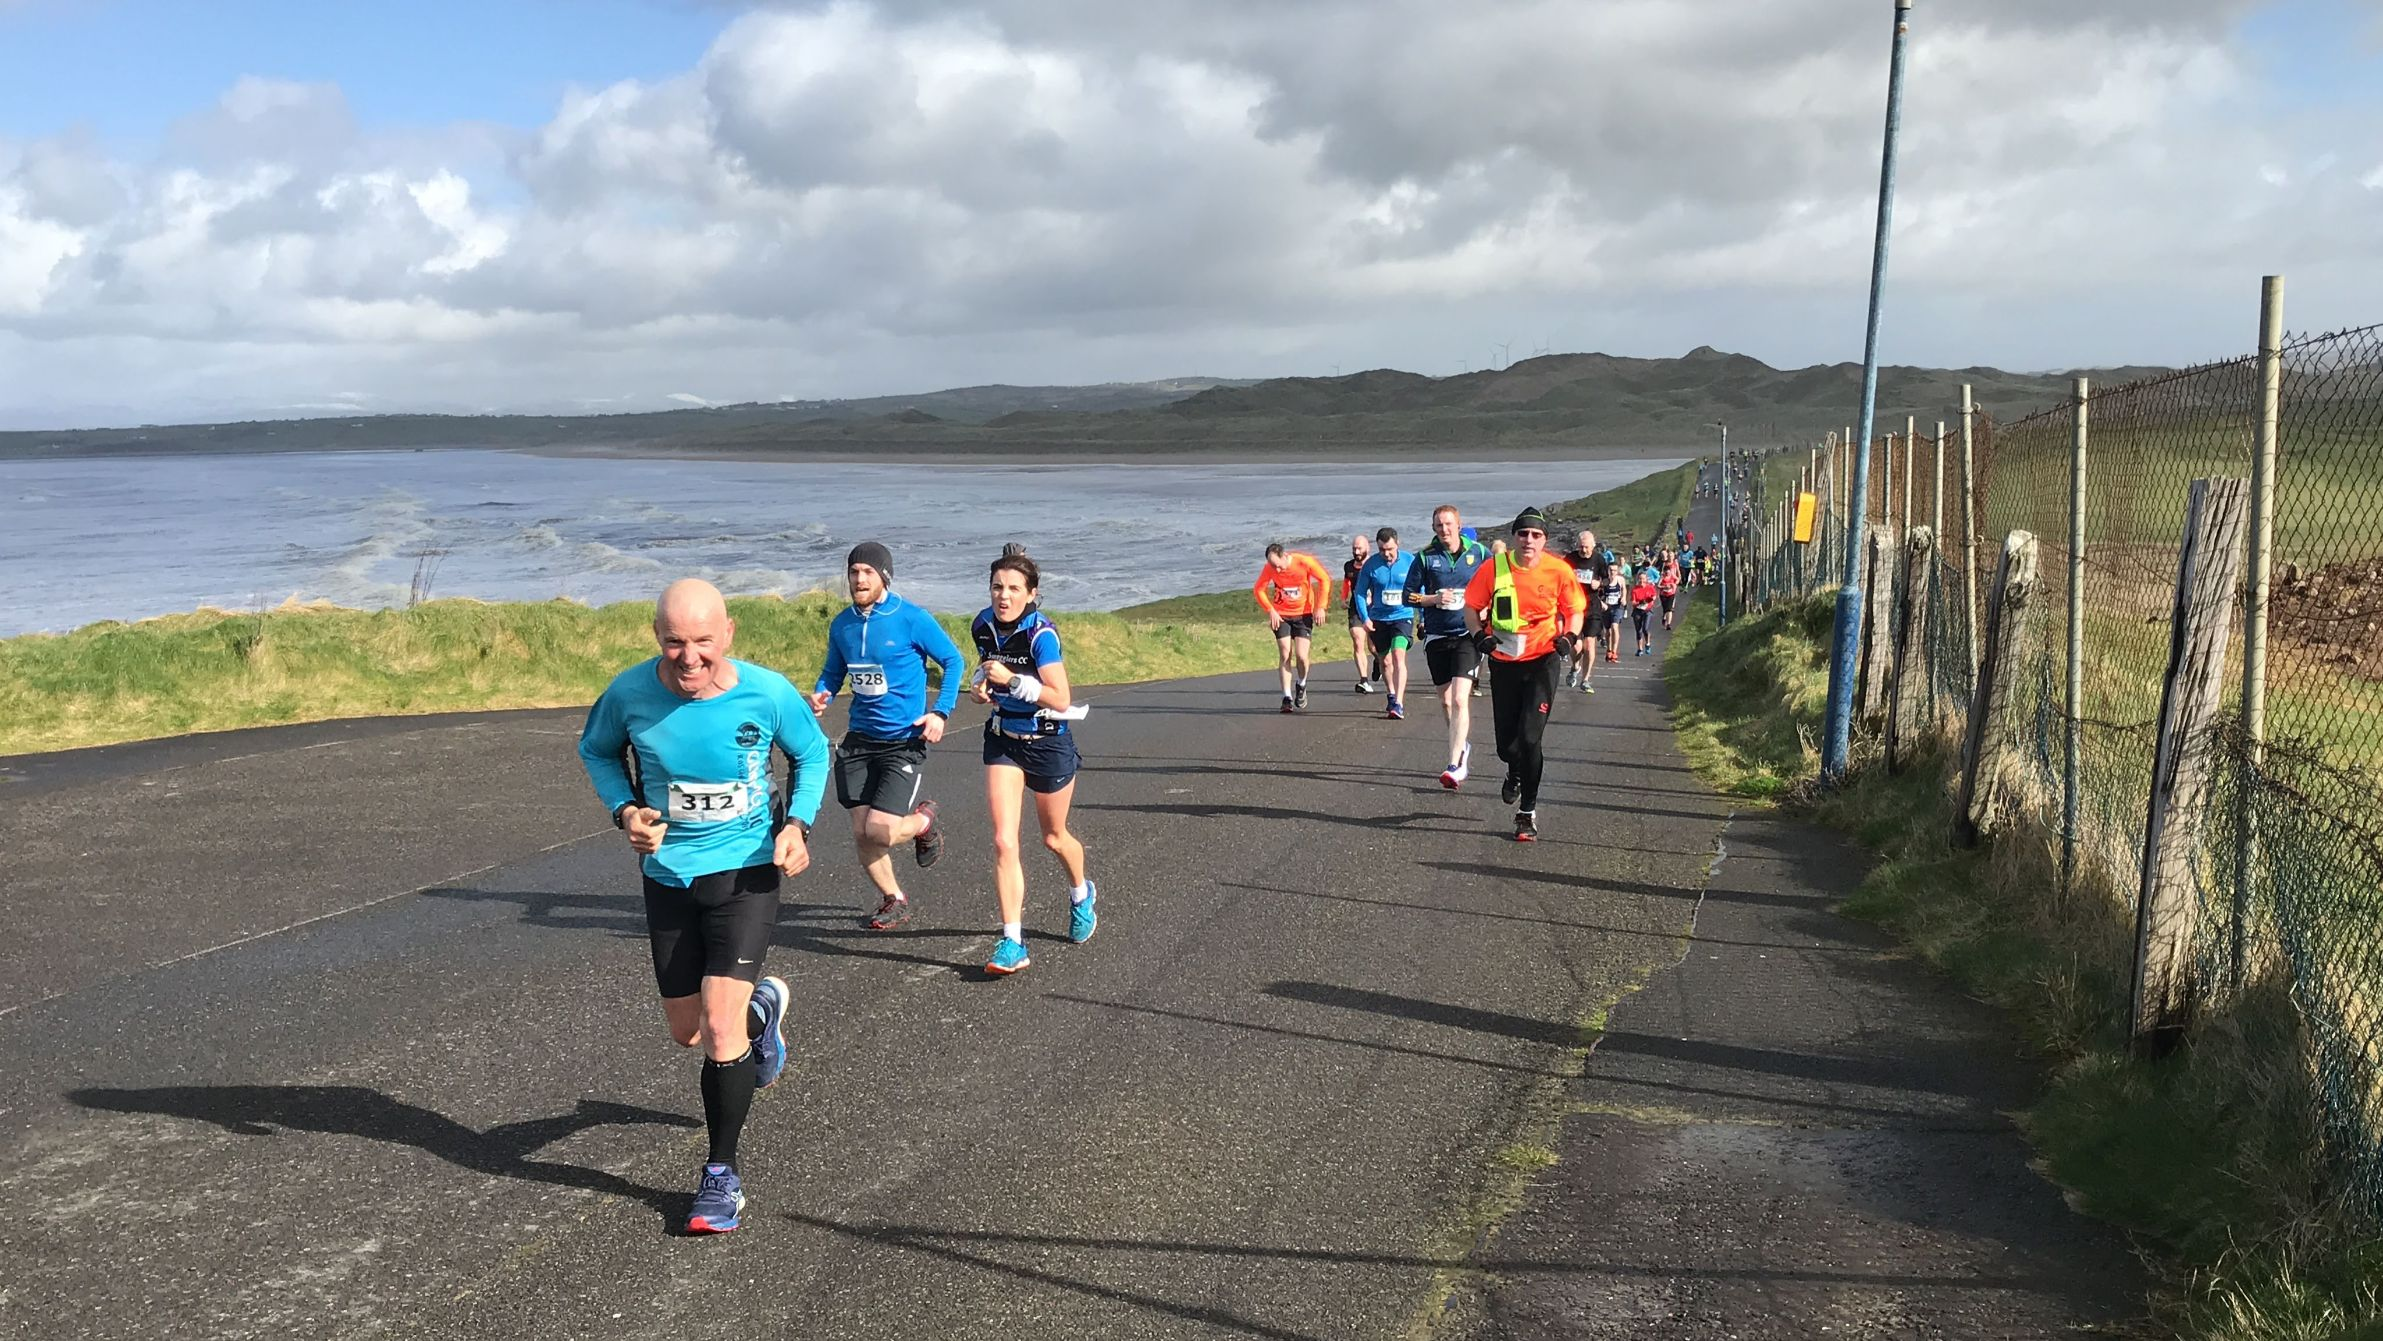 Runners on Roguey during the 2019 Cara Bundoran Challenge - virtual cara run